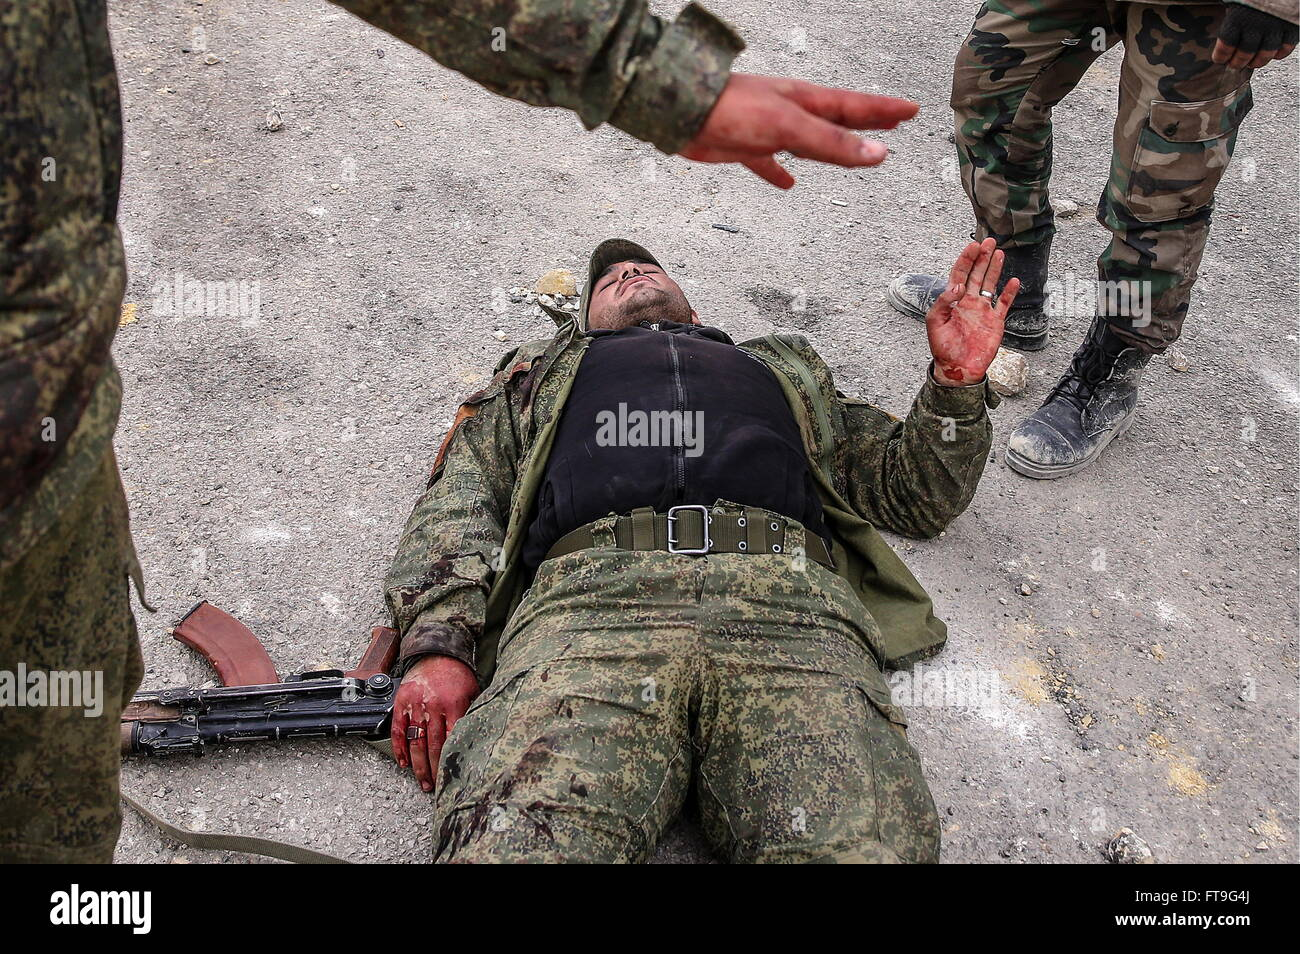 Palmyra, Syria. 26th Mar, 2016. A shell-shocked soldier of the Syrian government army at the Fahkr ad-Din al-Maani - Stock Image